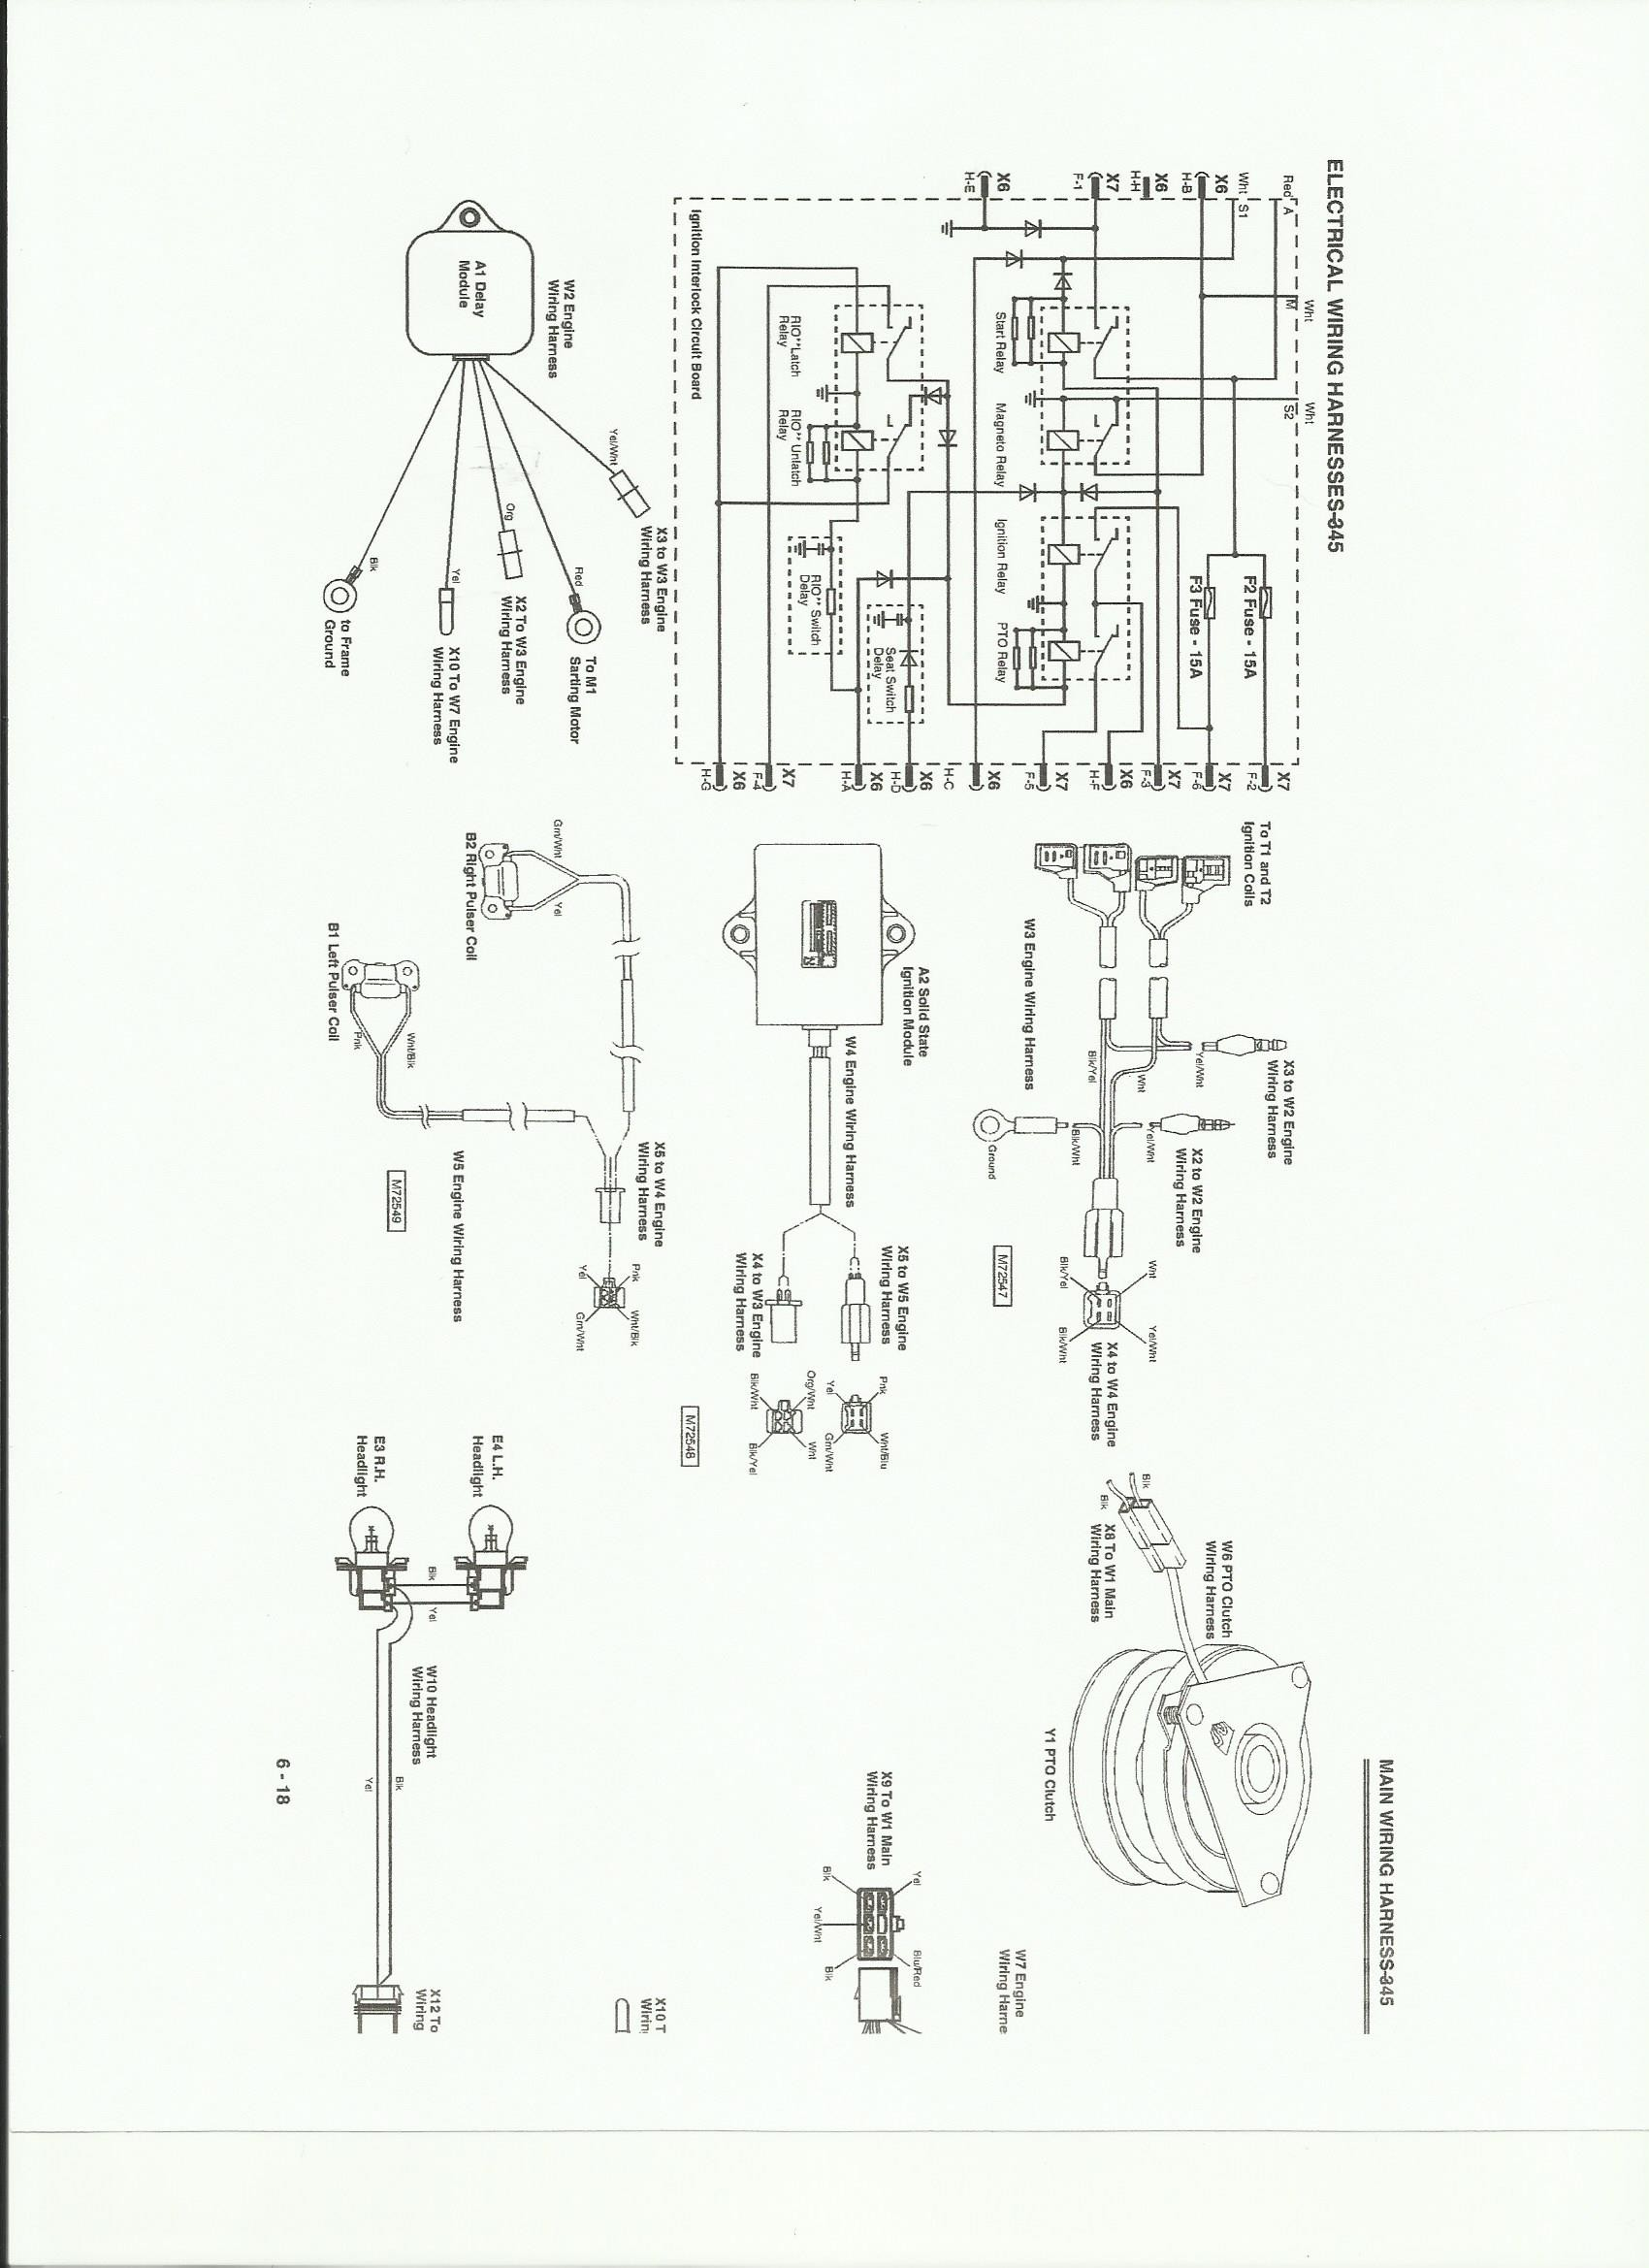 Electrical Schematic 345 John Deere Tractor Need A 345 Wiring Diagram Pdf Please Of Electrical Schematic 345 John Deere Tractor